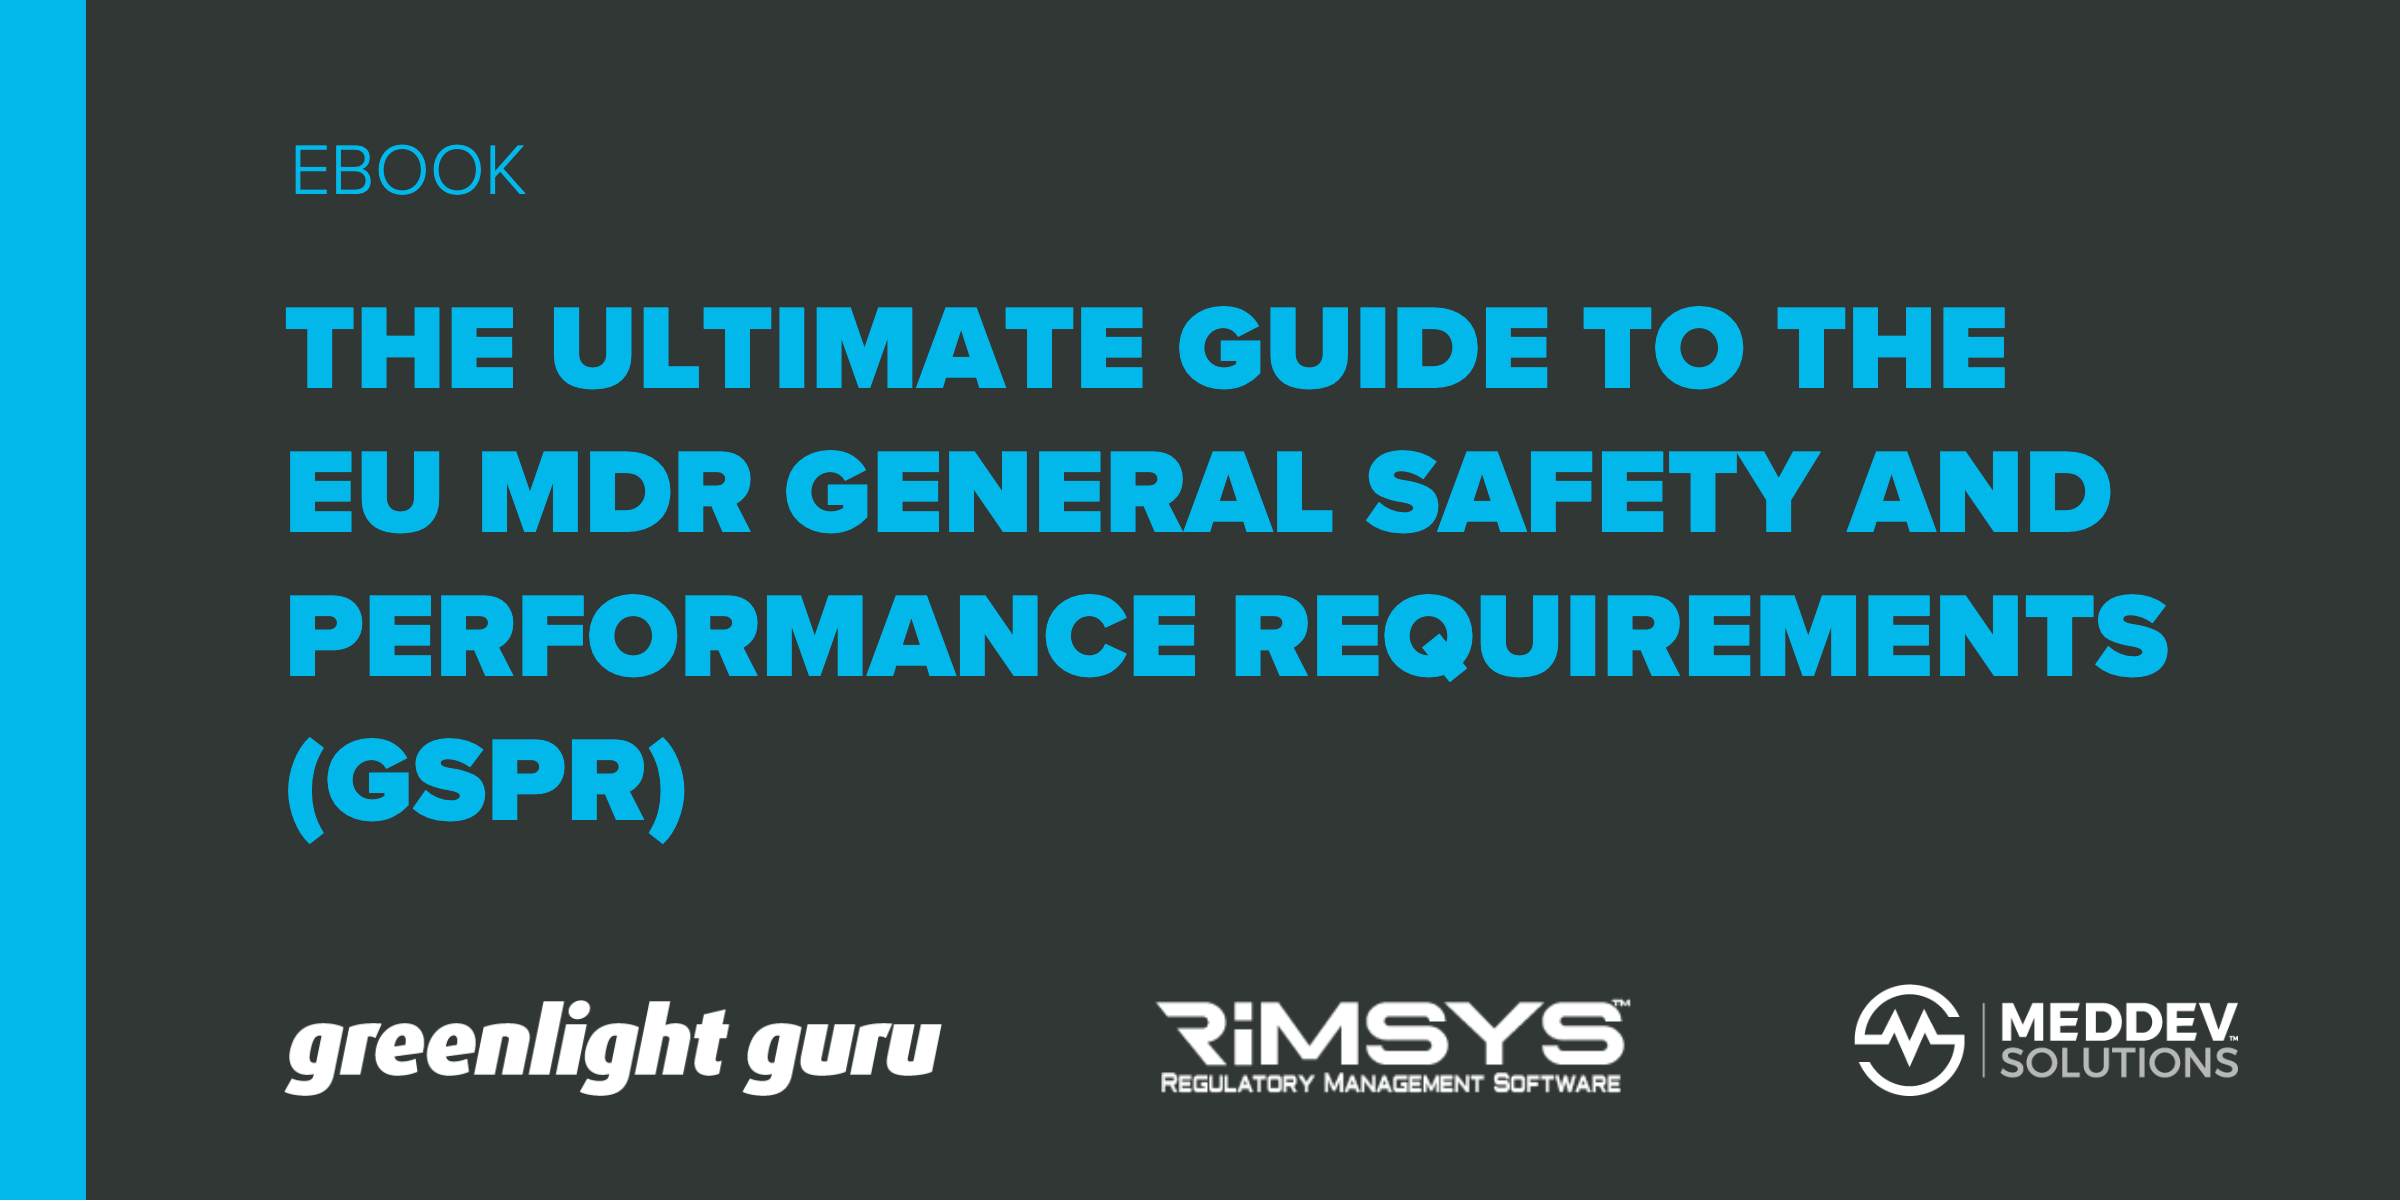 The Ultimate Guide to the EU MDR General Safety and Performance Requirements (GSPR) - Featured Image